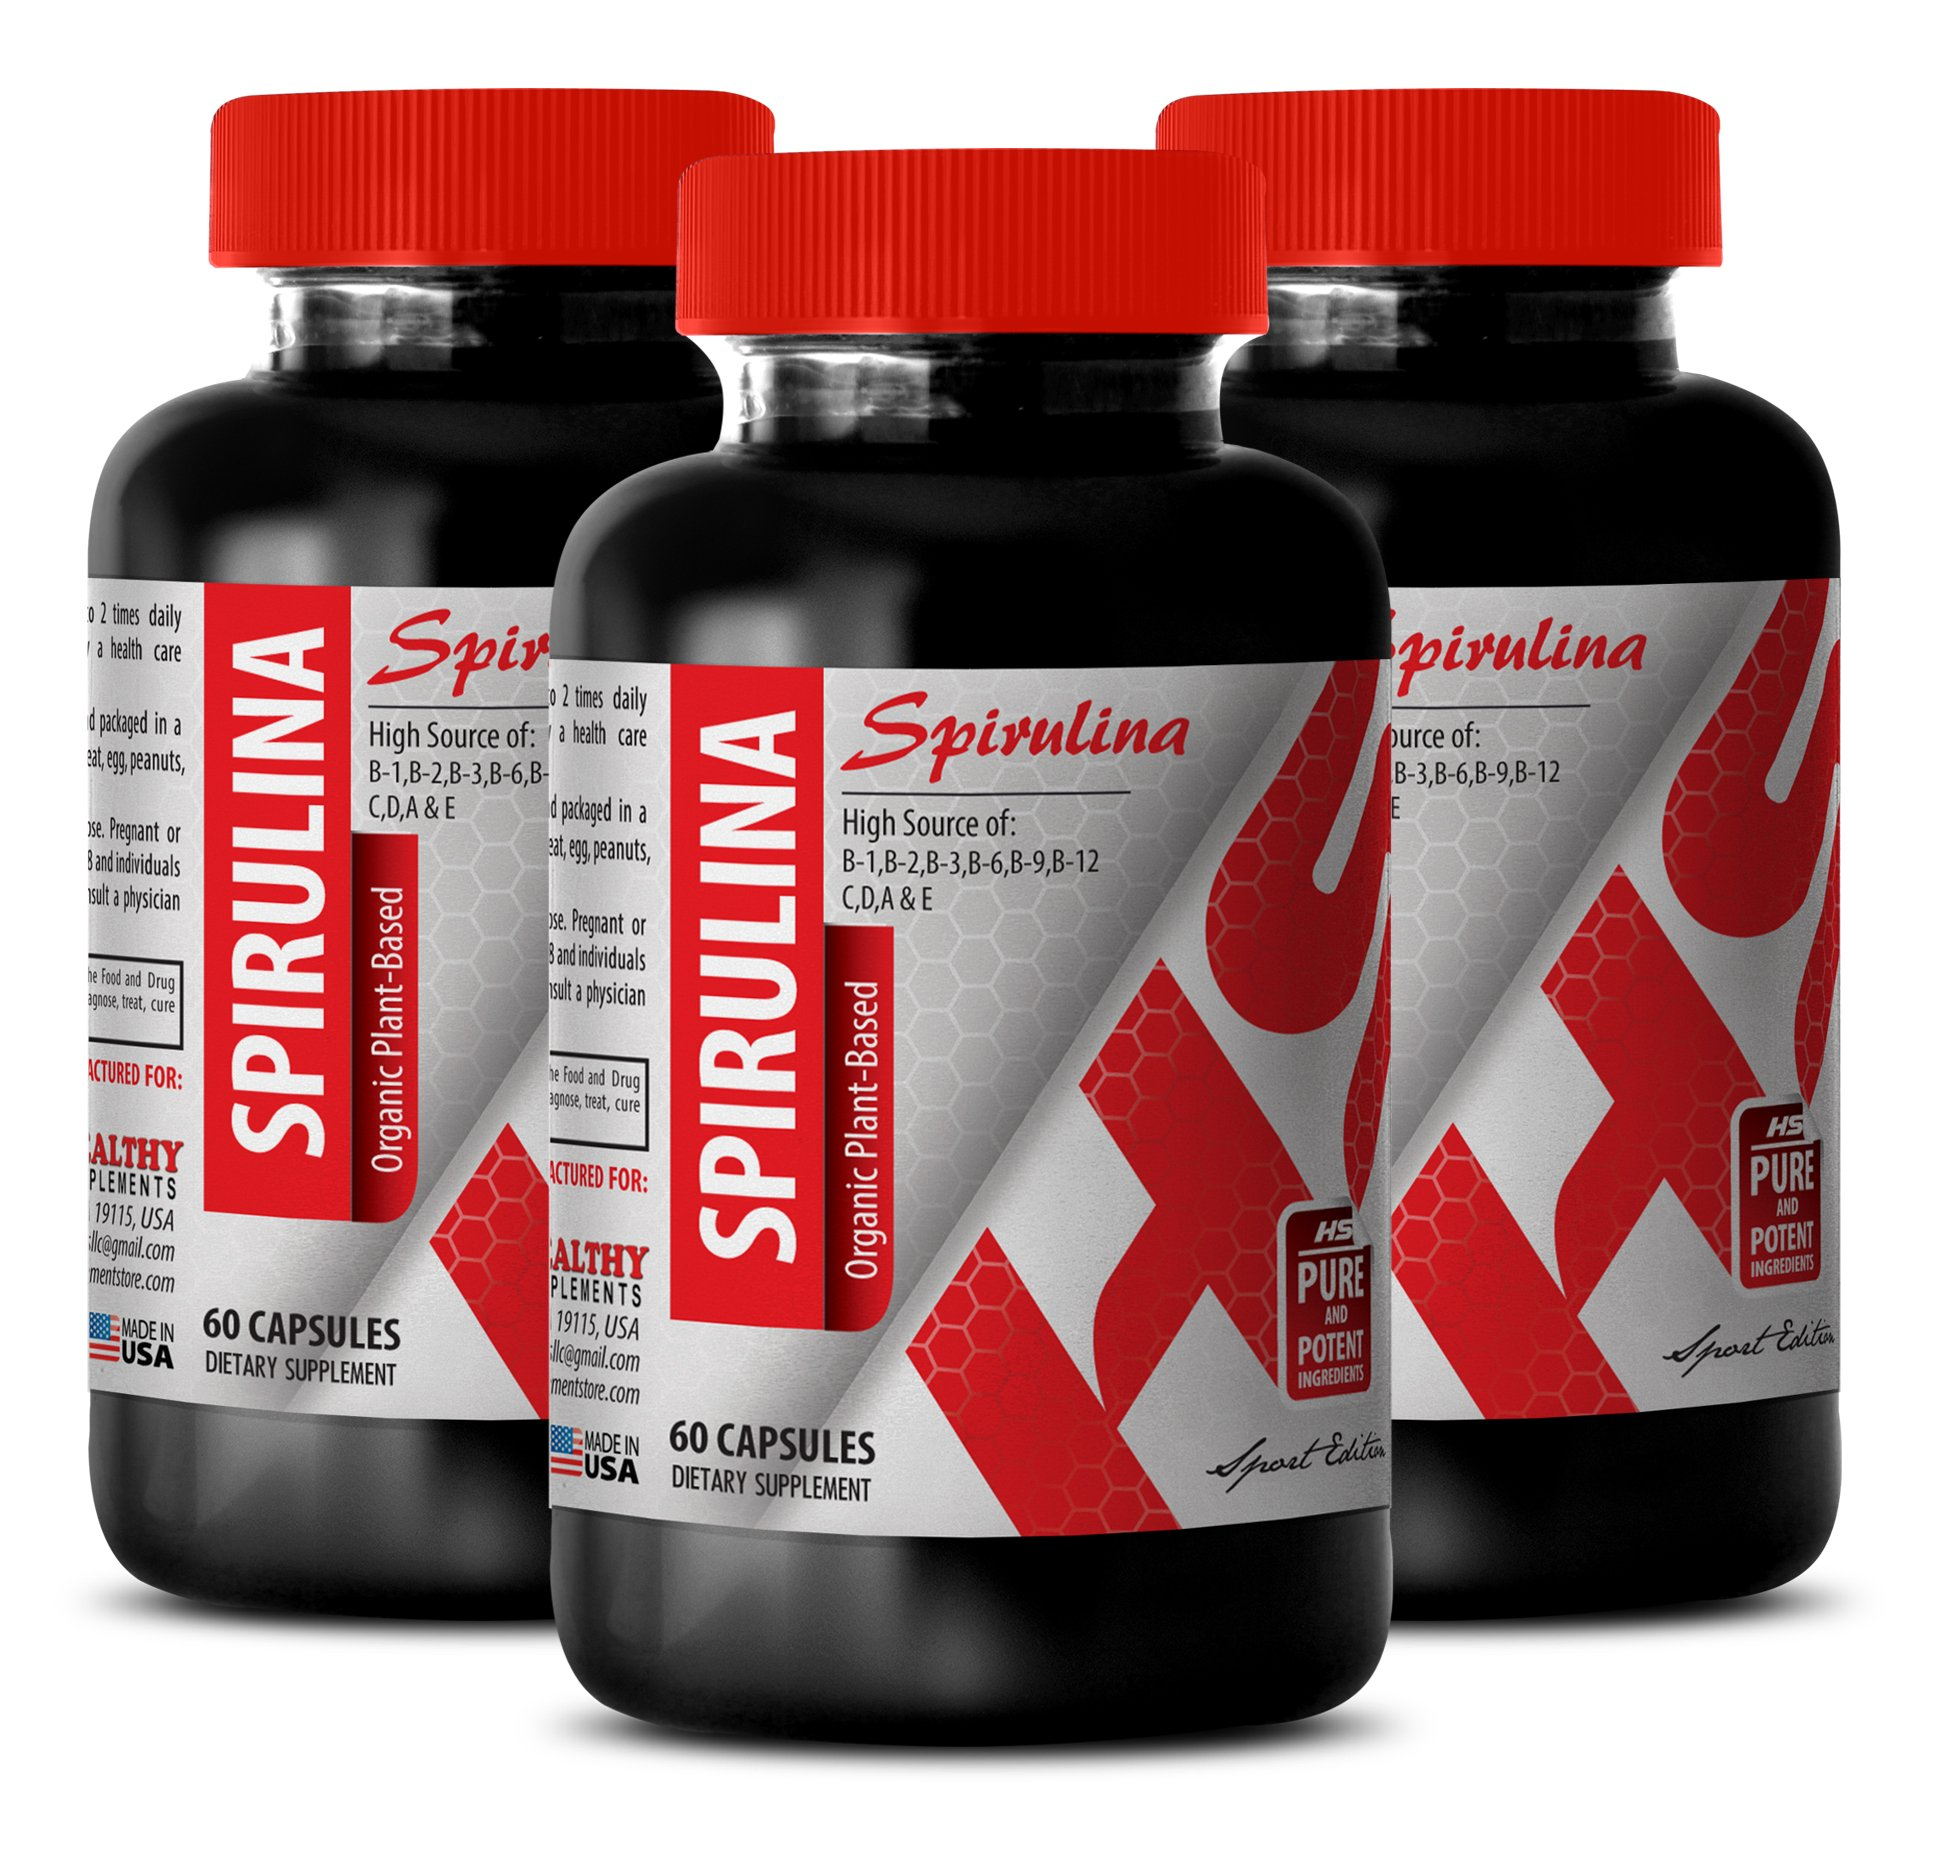 Spirulina supplements 500mg - SPIRULINA ORGANIC PLANT-BASED 500 MG - improve digestive health (3 Bottles) by Healthy Supplements LLC